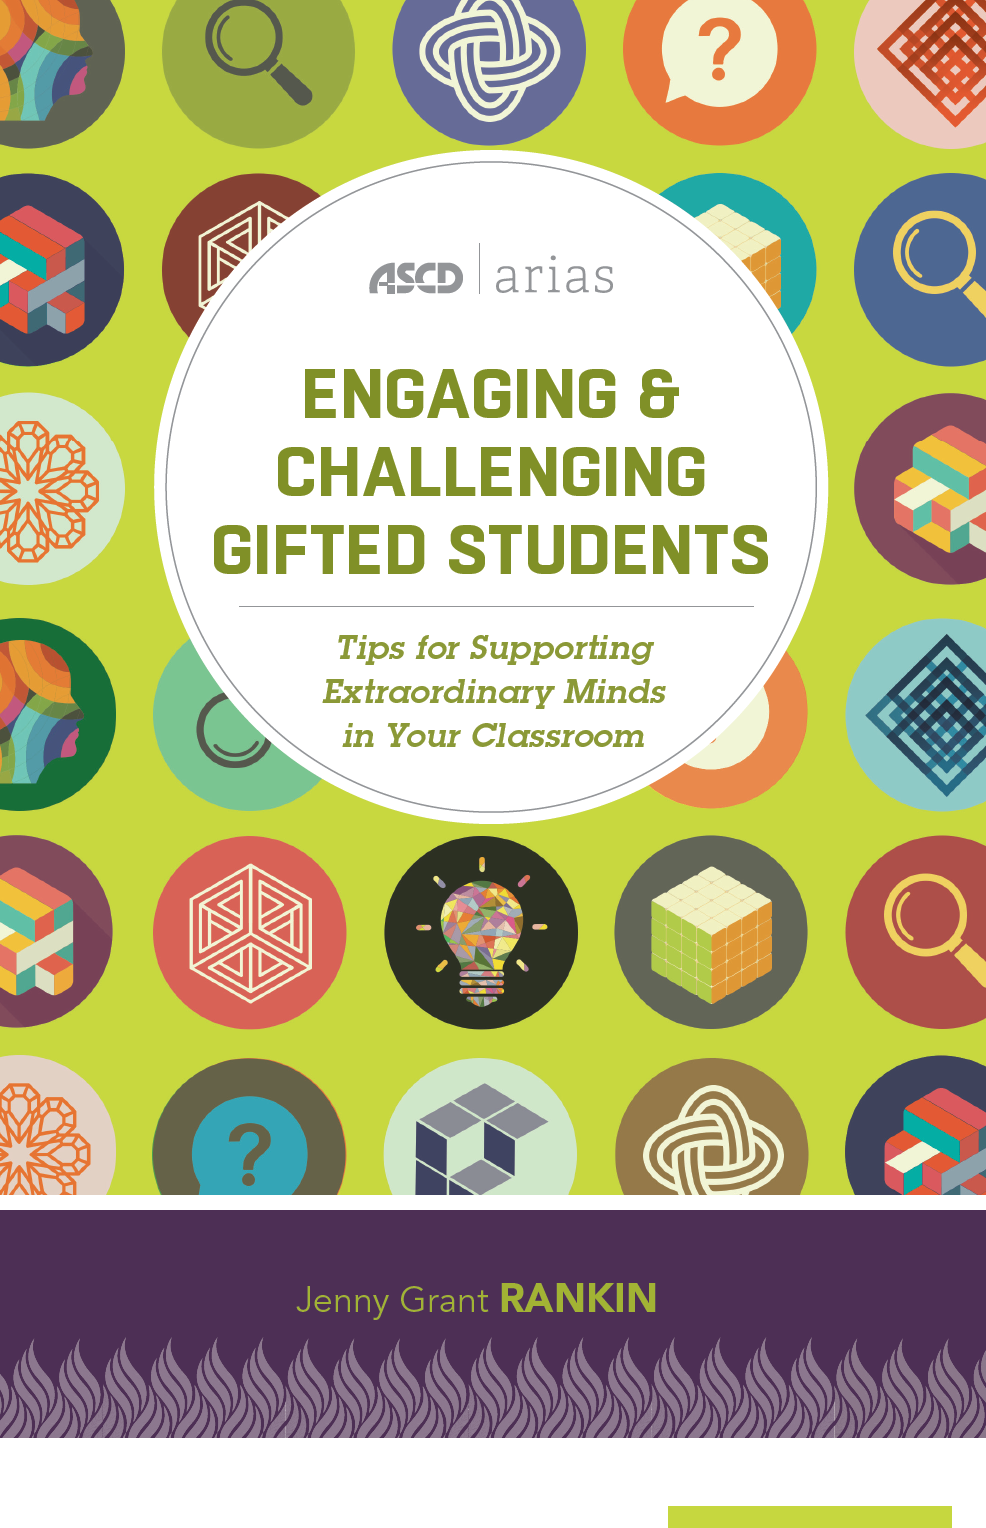 NEW BOOK: Engaging & Challenging Gifted Students: Tips for Supporting Extraordinary Minds in Your Classroom